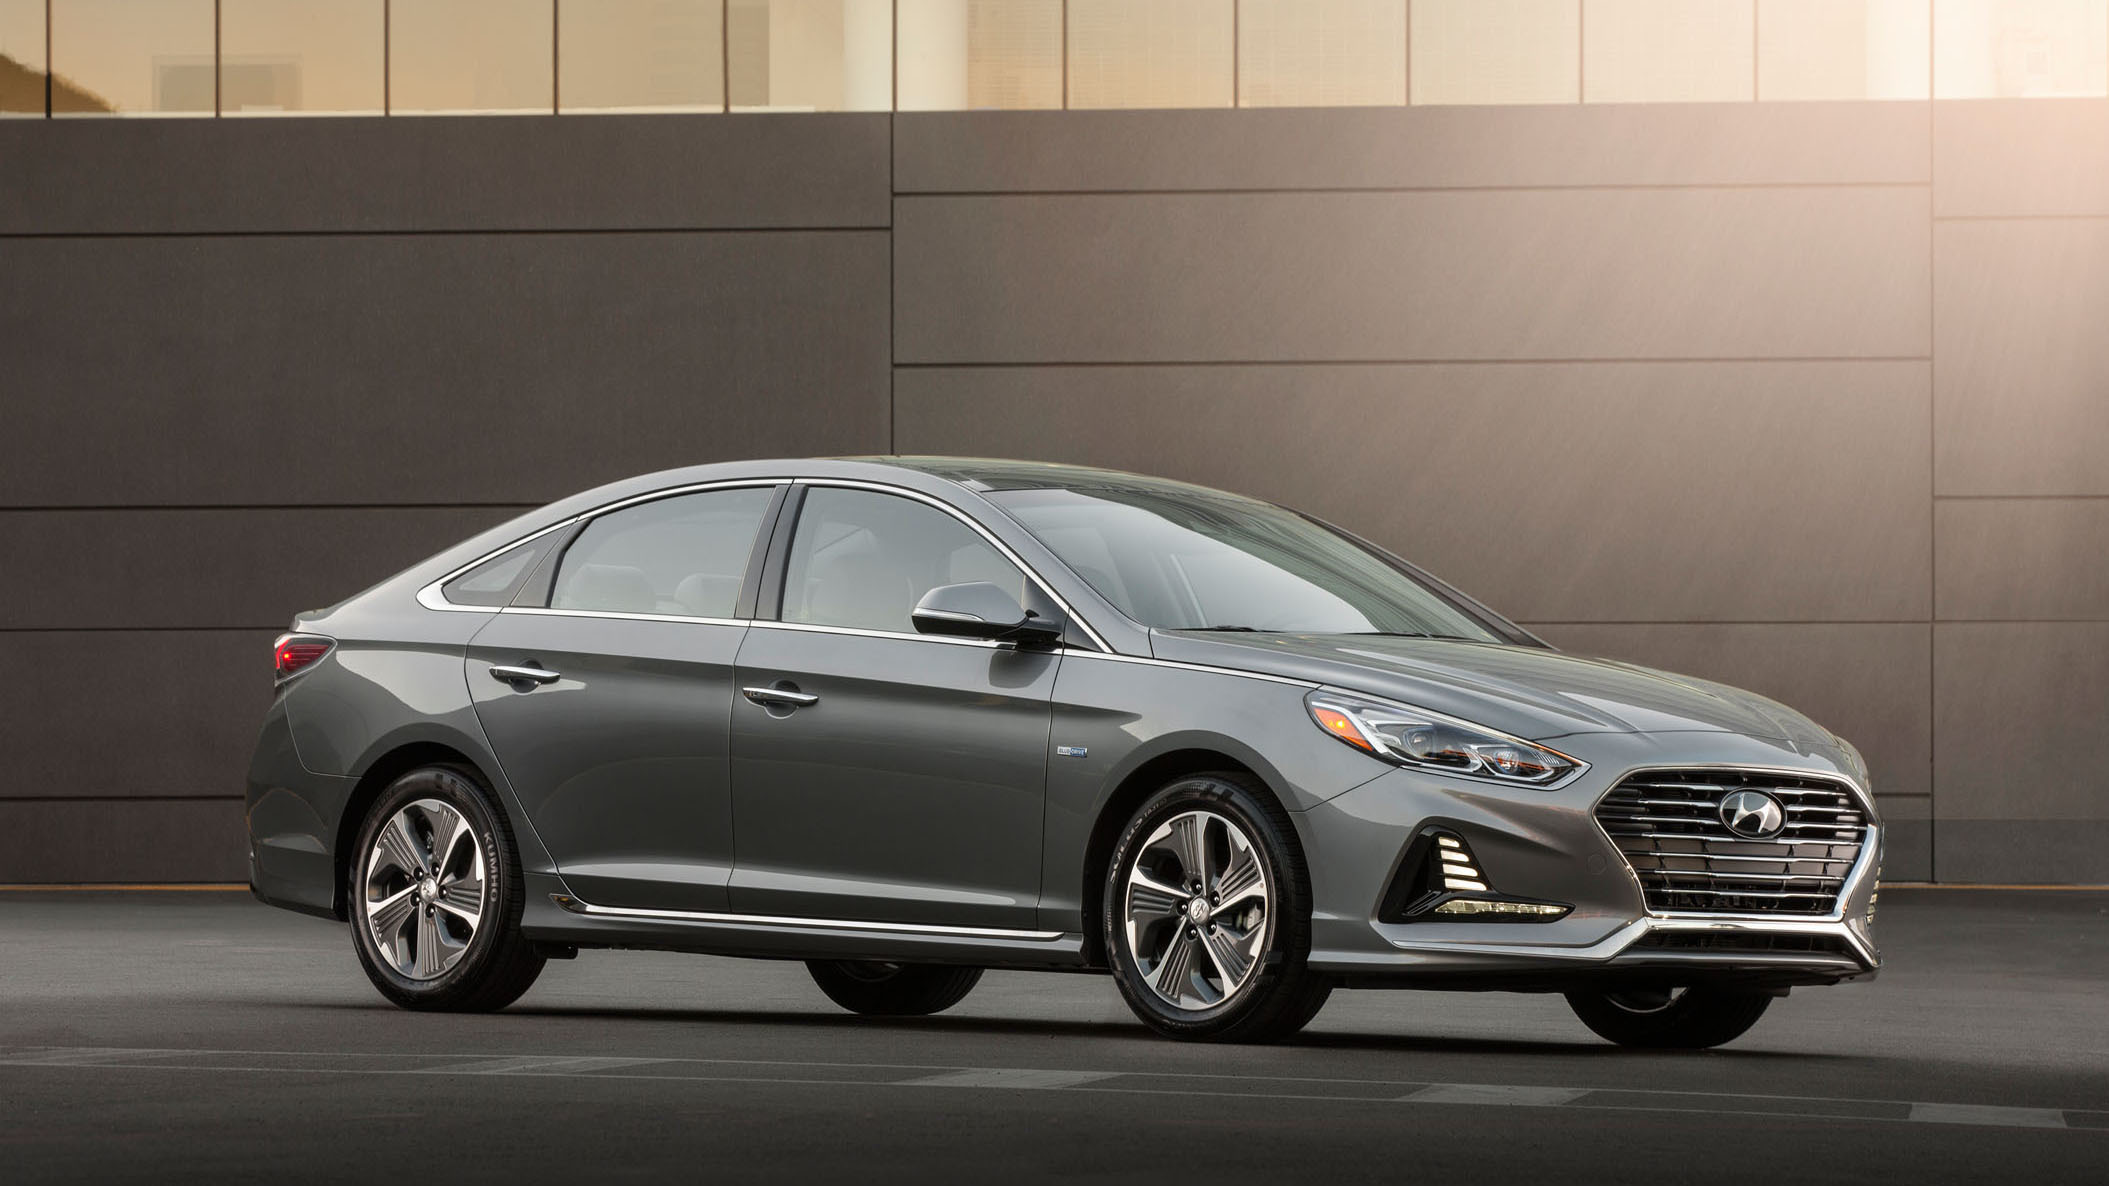 2018 Hyundai Sonata Hybrid and PHEV Photo Gallery - Autoblog